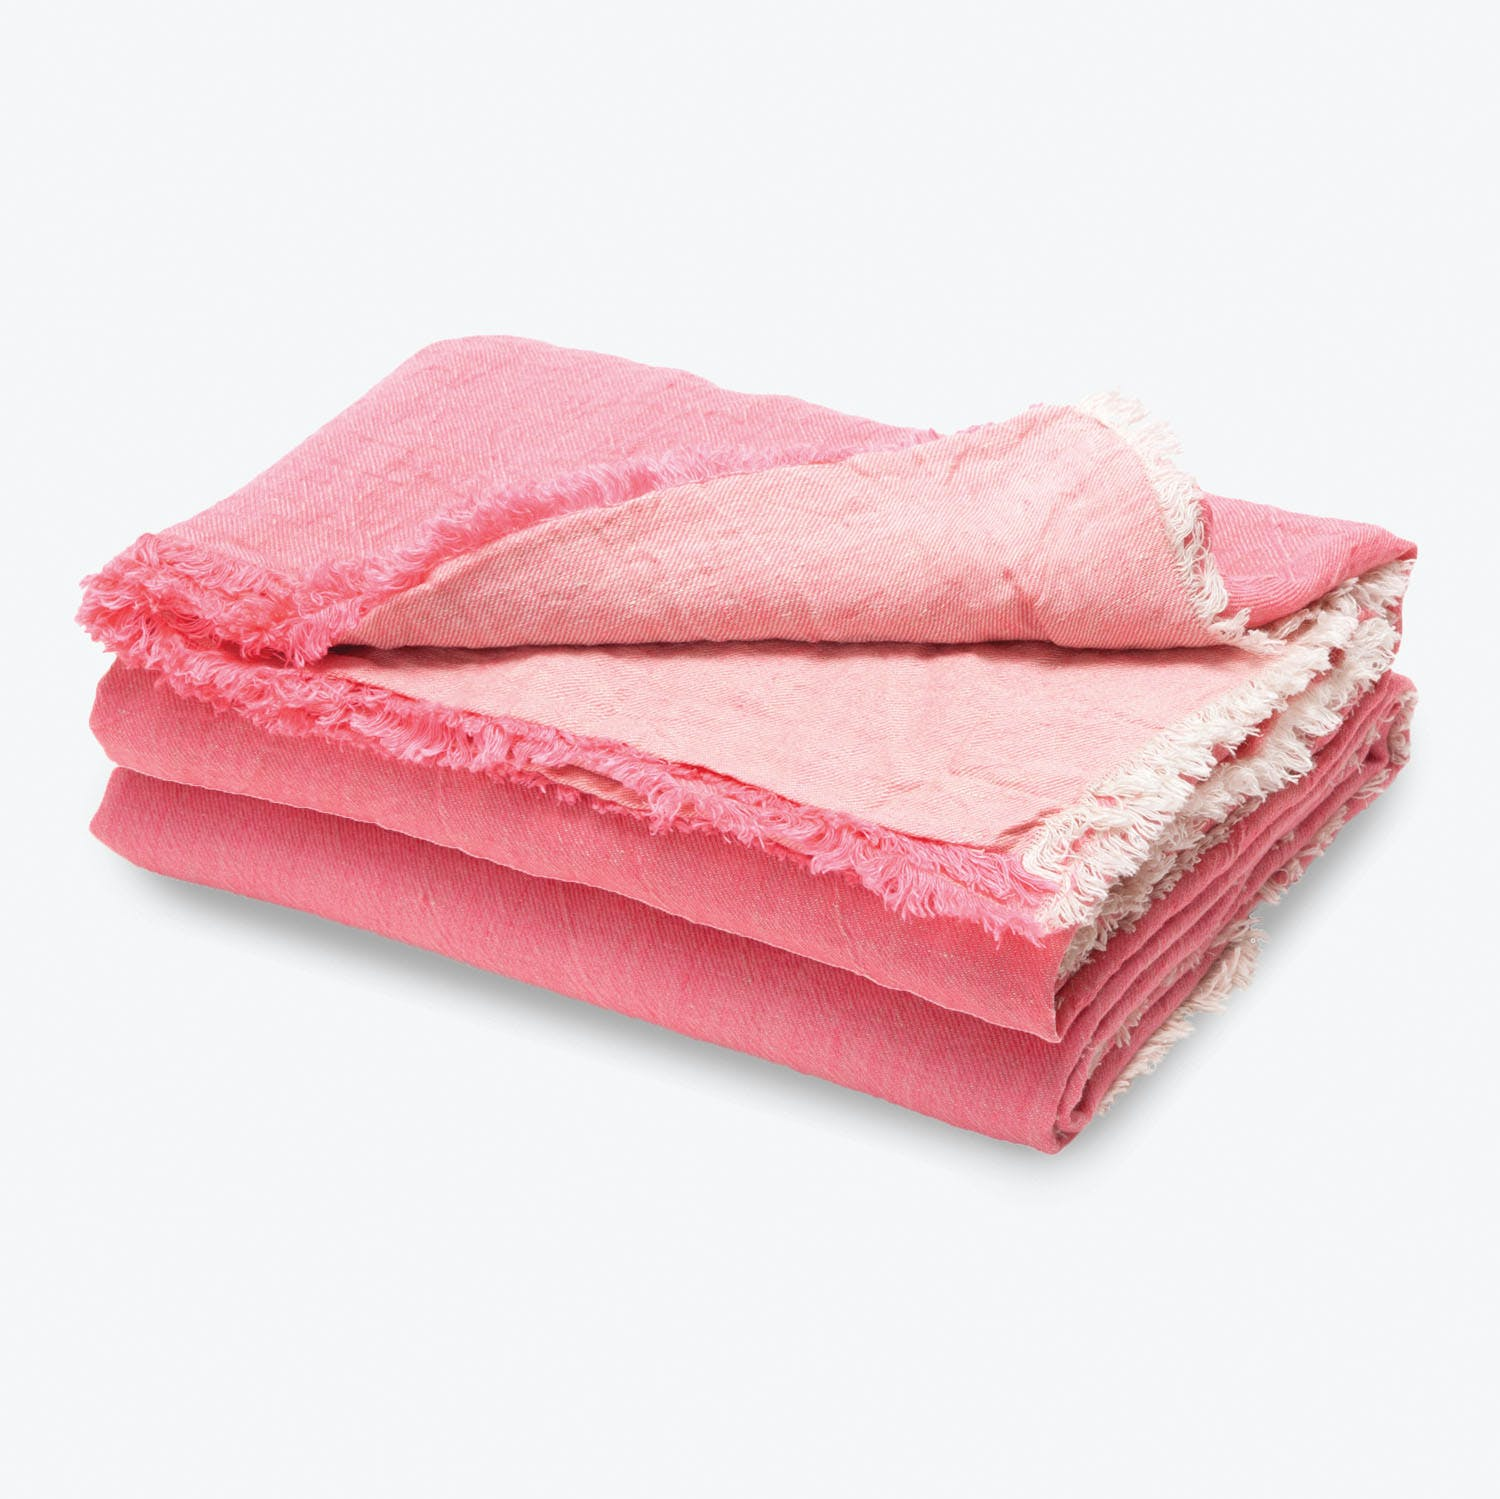 Washed Linen Throw Bright Pink